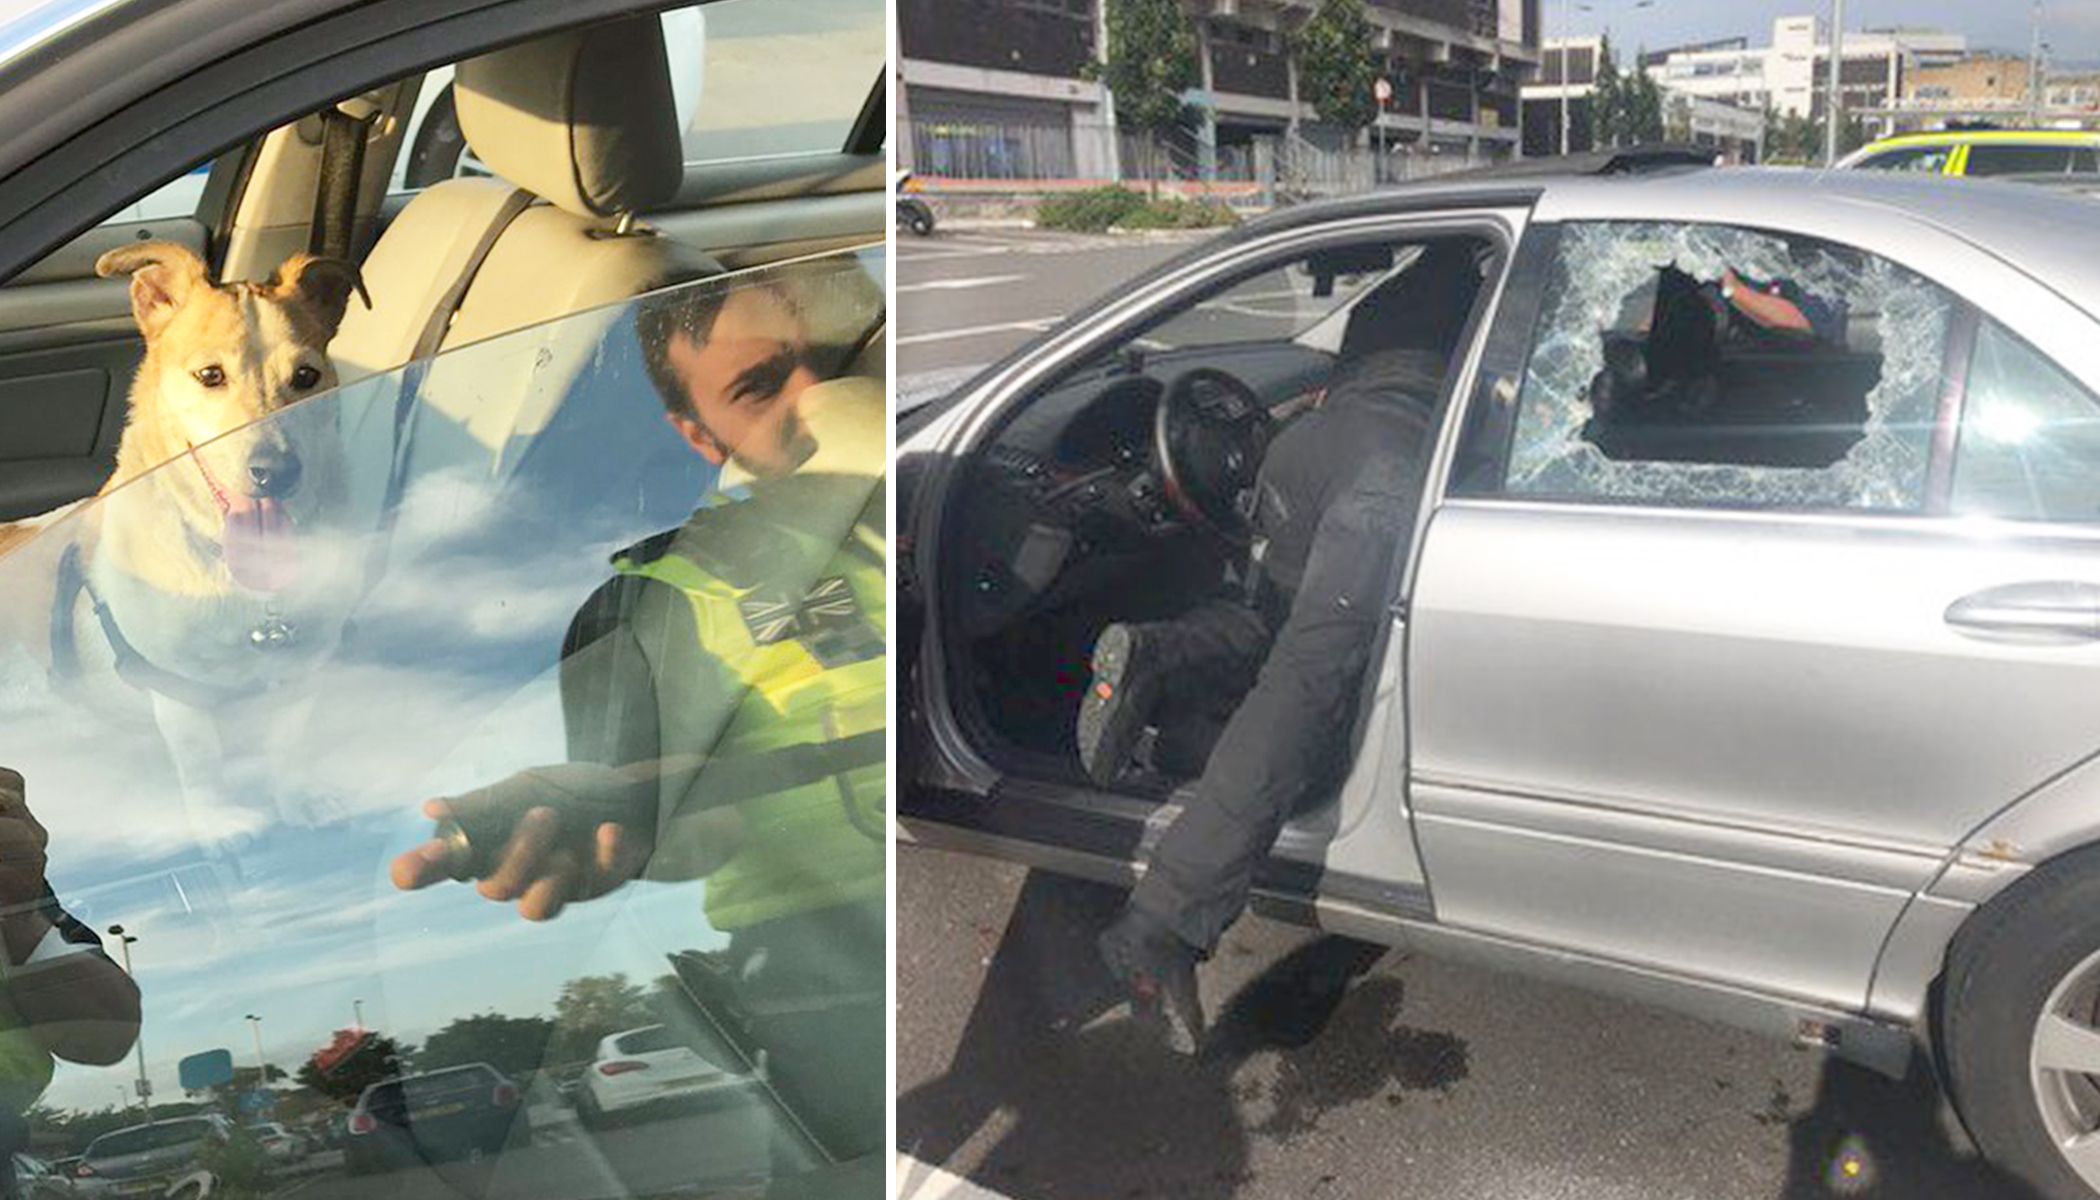 Cops Smash Window to Save Dog Trapped Inside Boiling-Hot Car, but Owners Aren't Happy